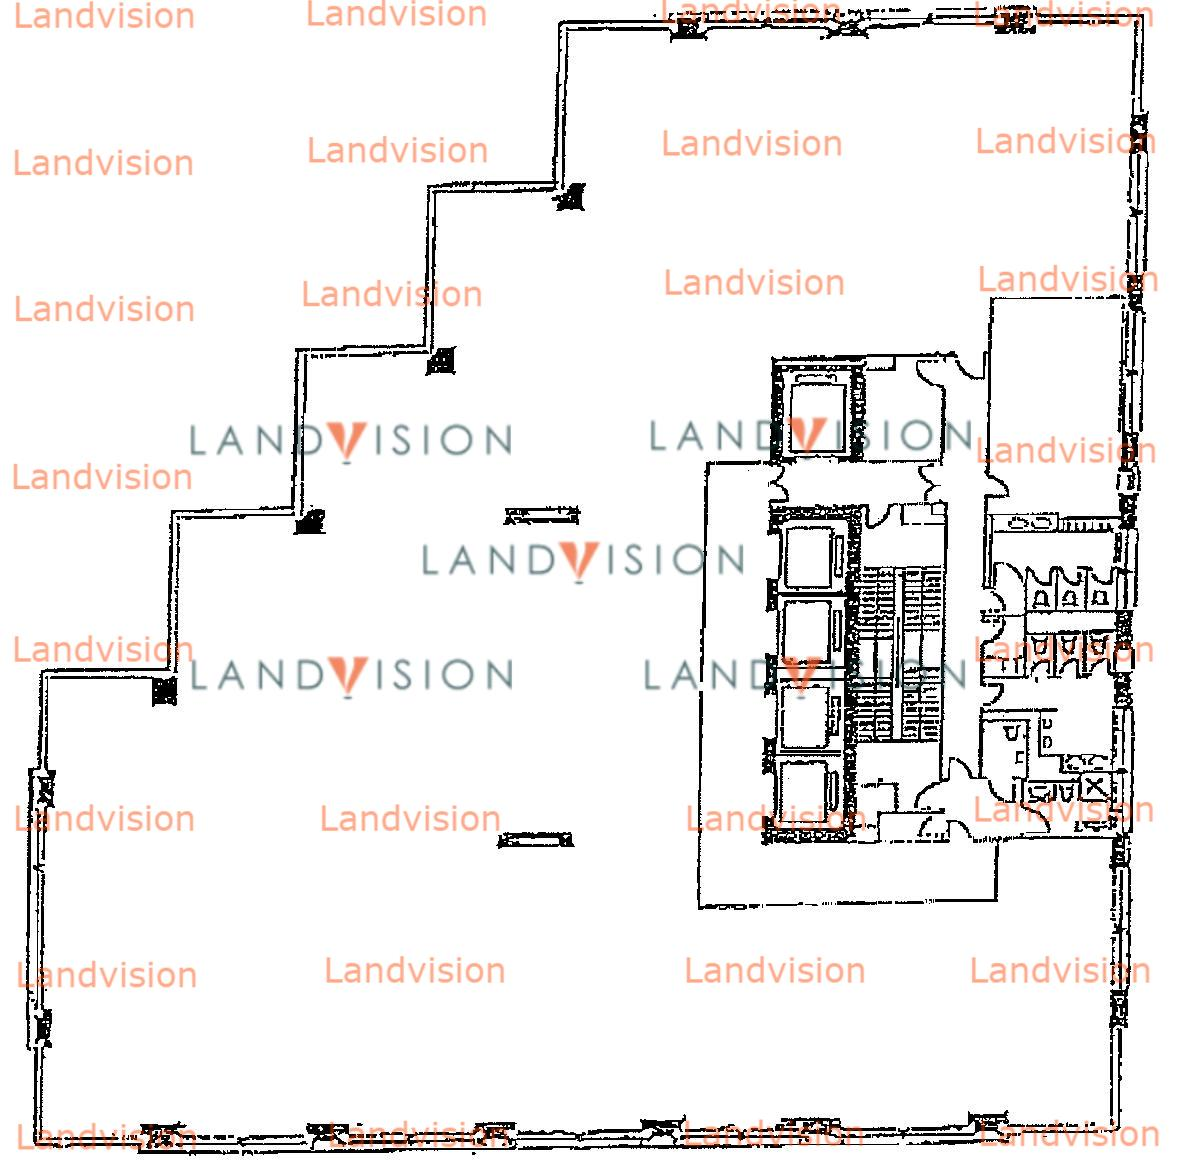 https://www.landvision.com.hk/wp-content/uploads/website/resize/floorplans/001394.JPG